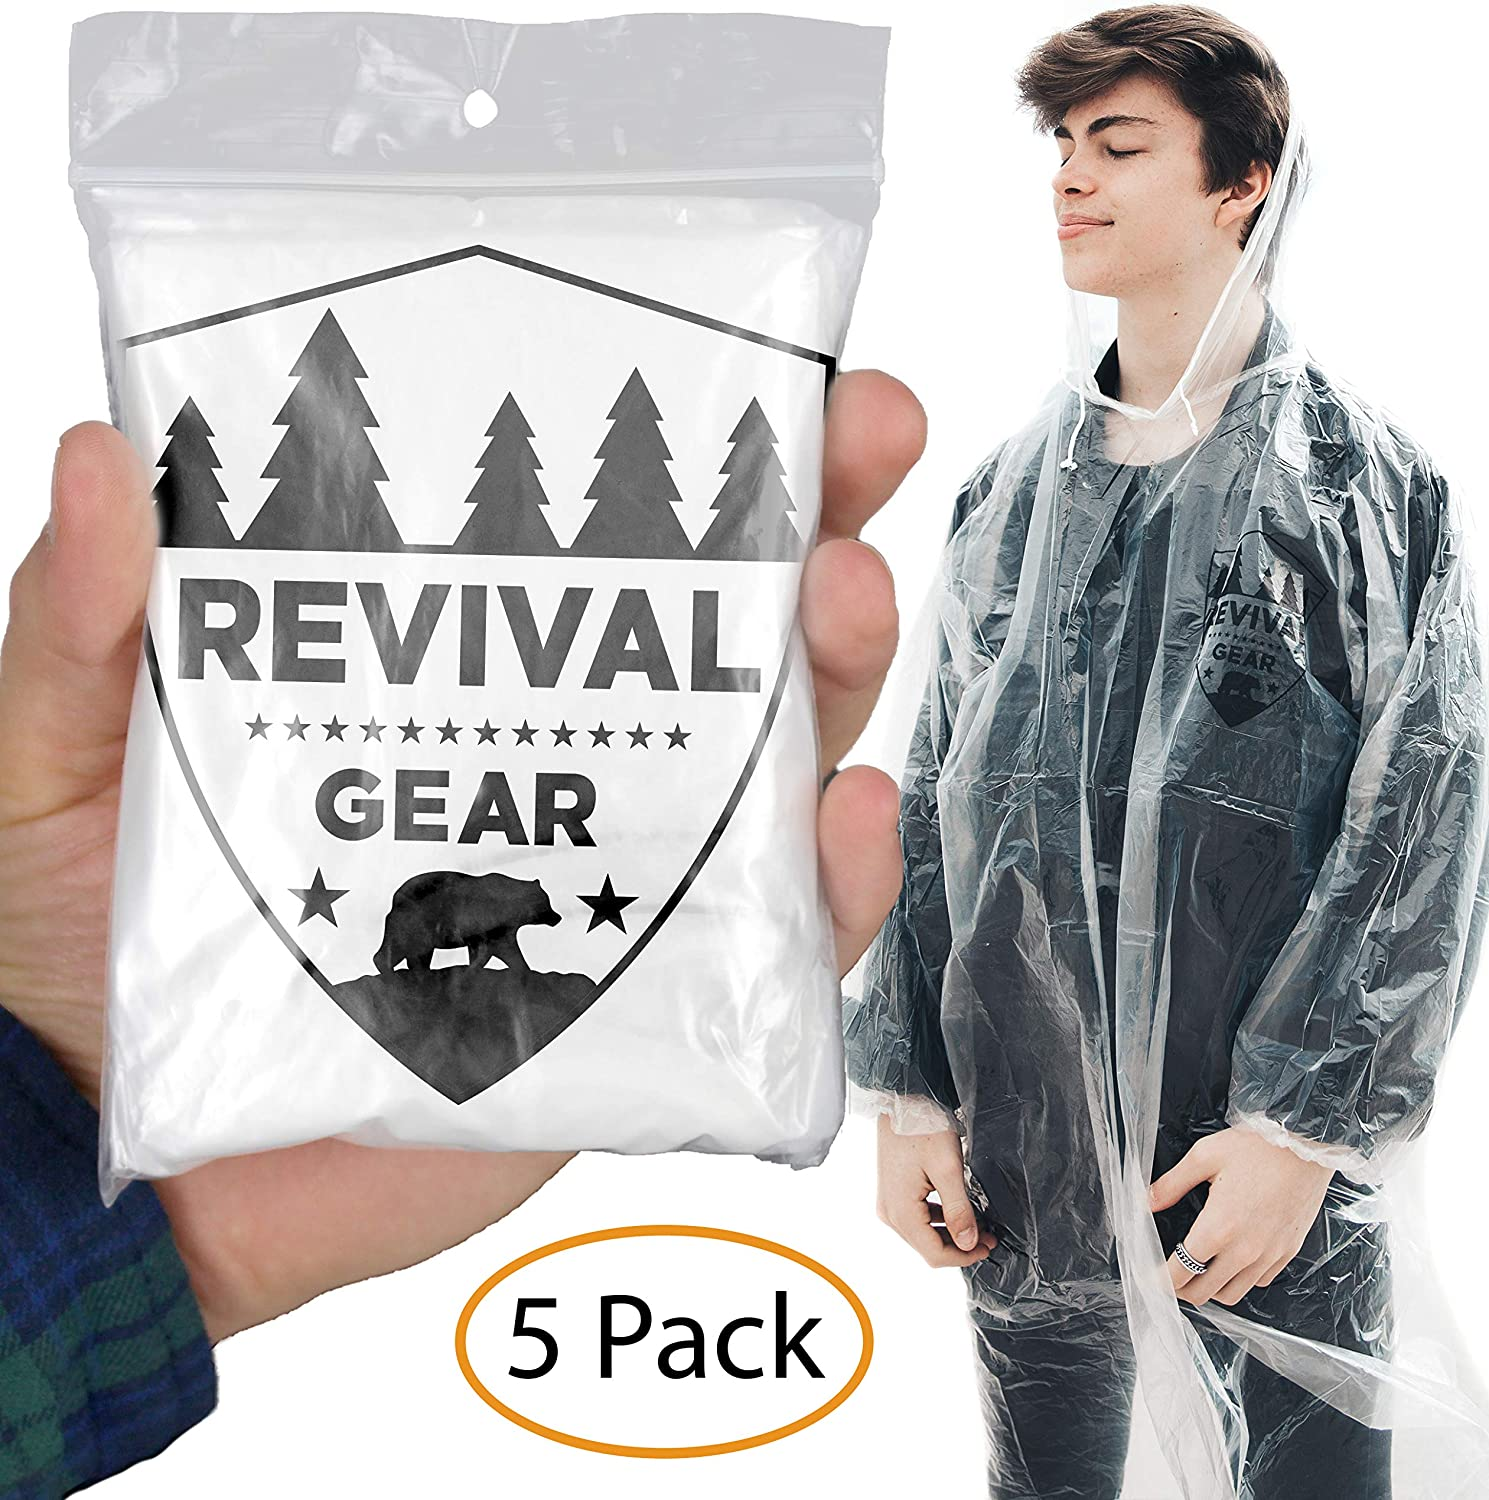 Revival Gear Disposable Rain Ponchos Challenge the lowest price Best Online limited product 5 Clear - Pack